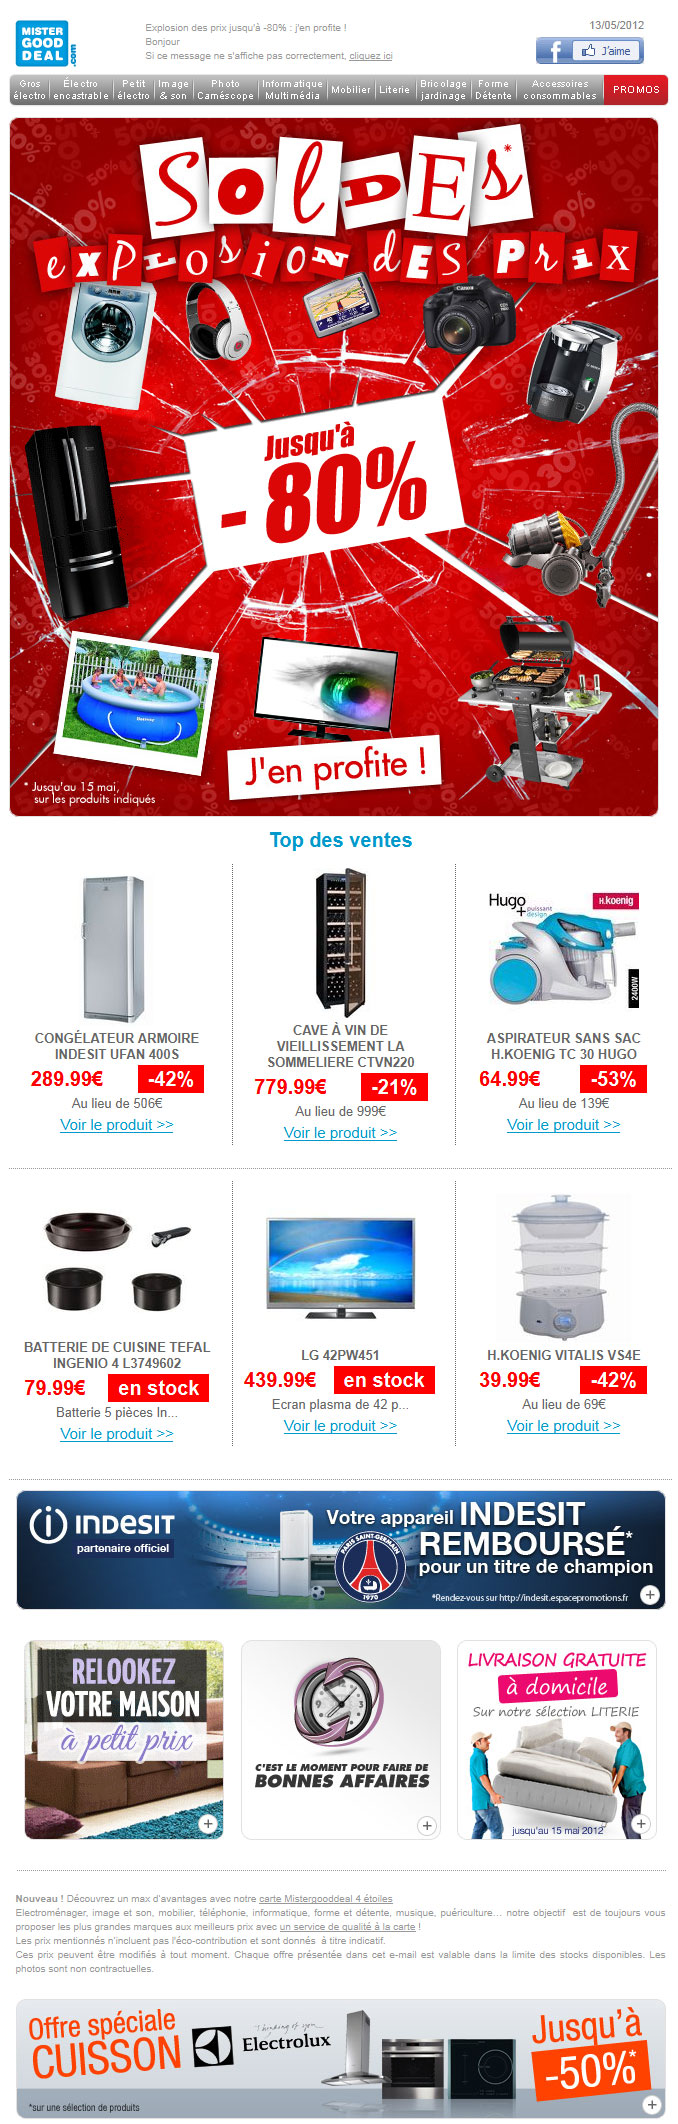 Newsletter Mister Good Deal 13.05.2012